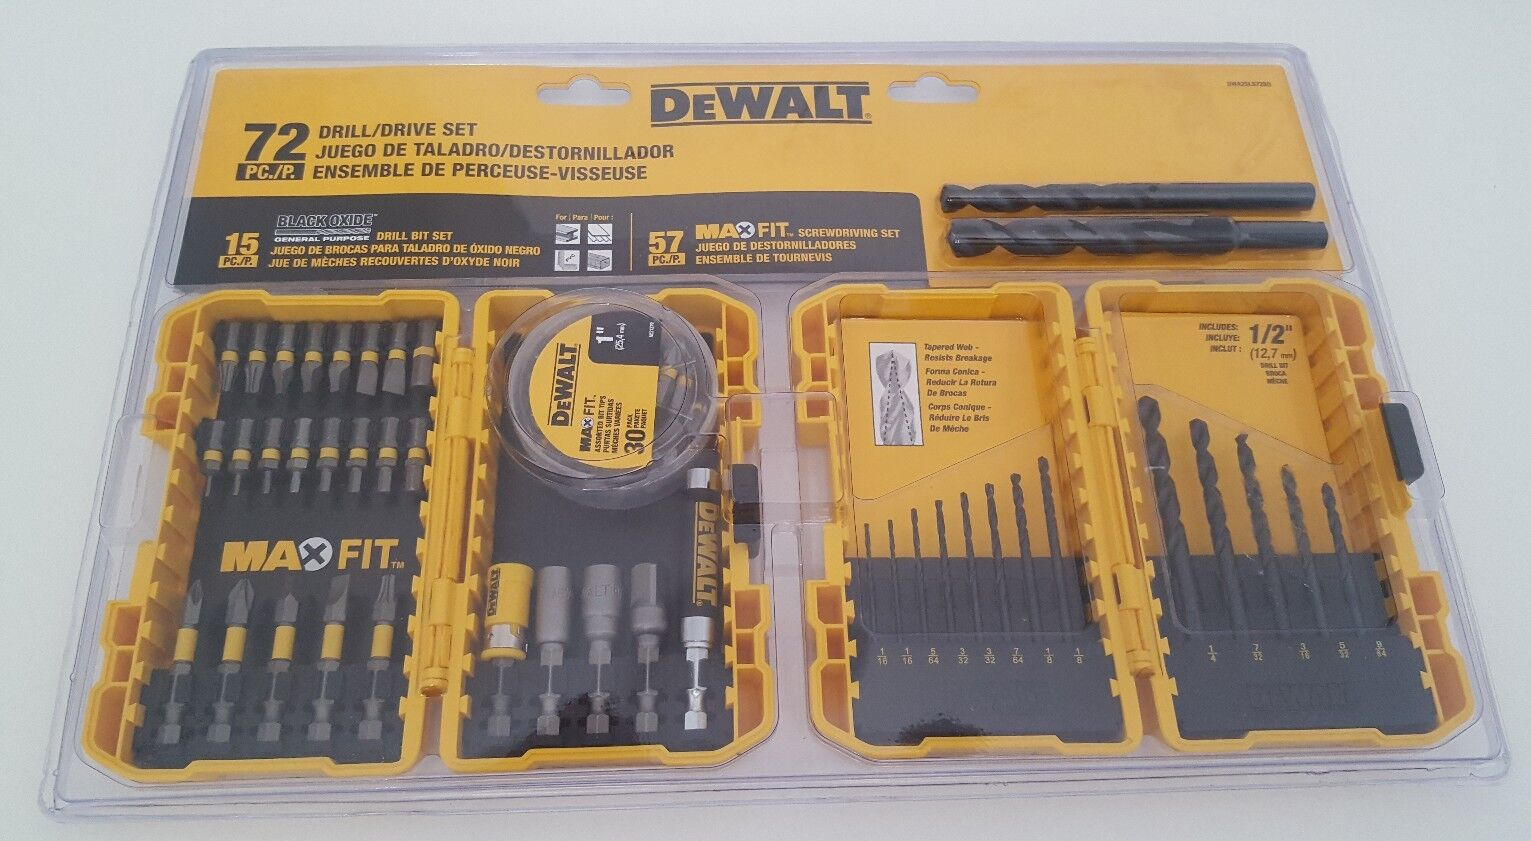 DeWALT New MaxFit Drill Drive Set 72pcs free shipping